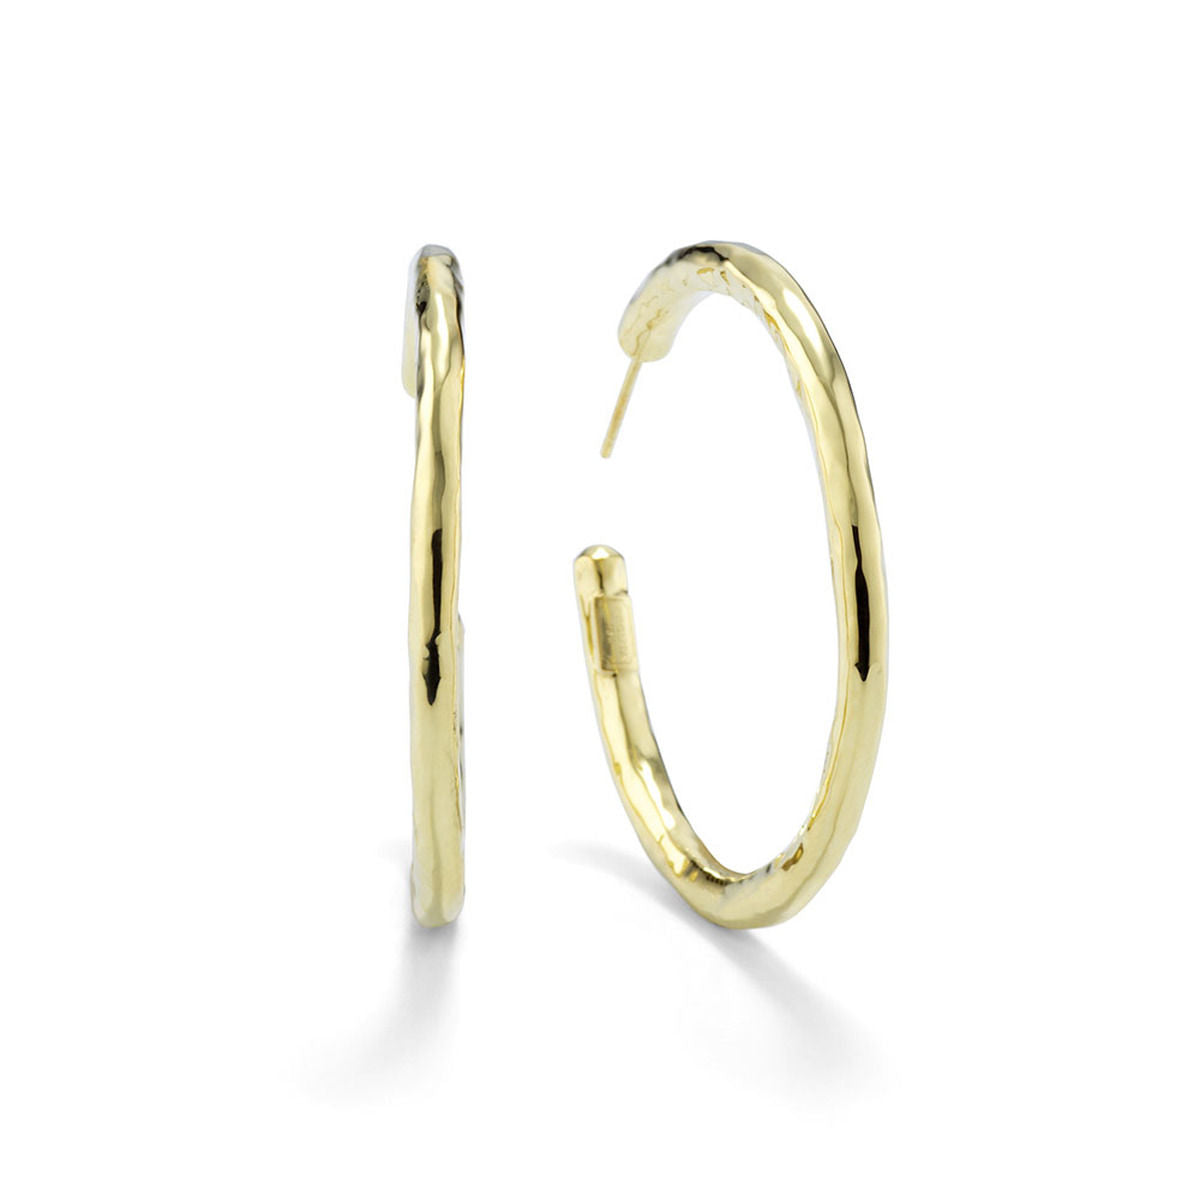 IPPOLITA Classico 18K Yellow Gold Medium Hoop Earrings